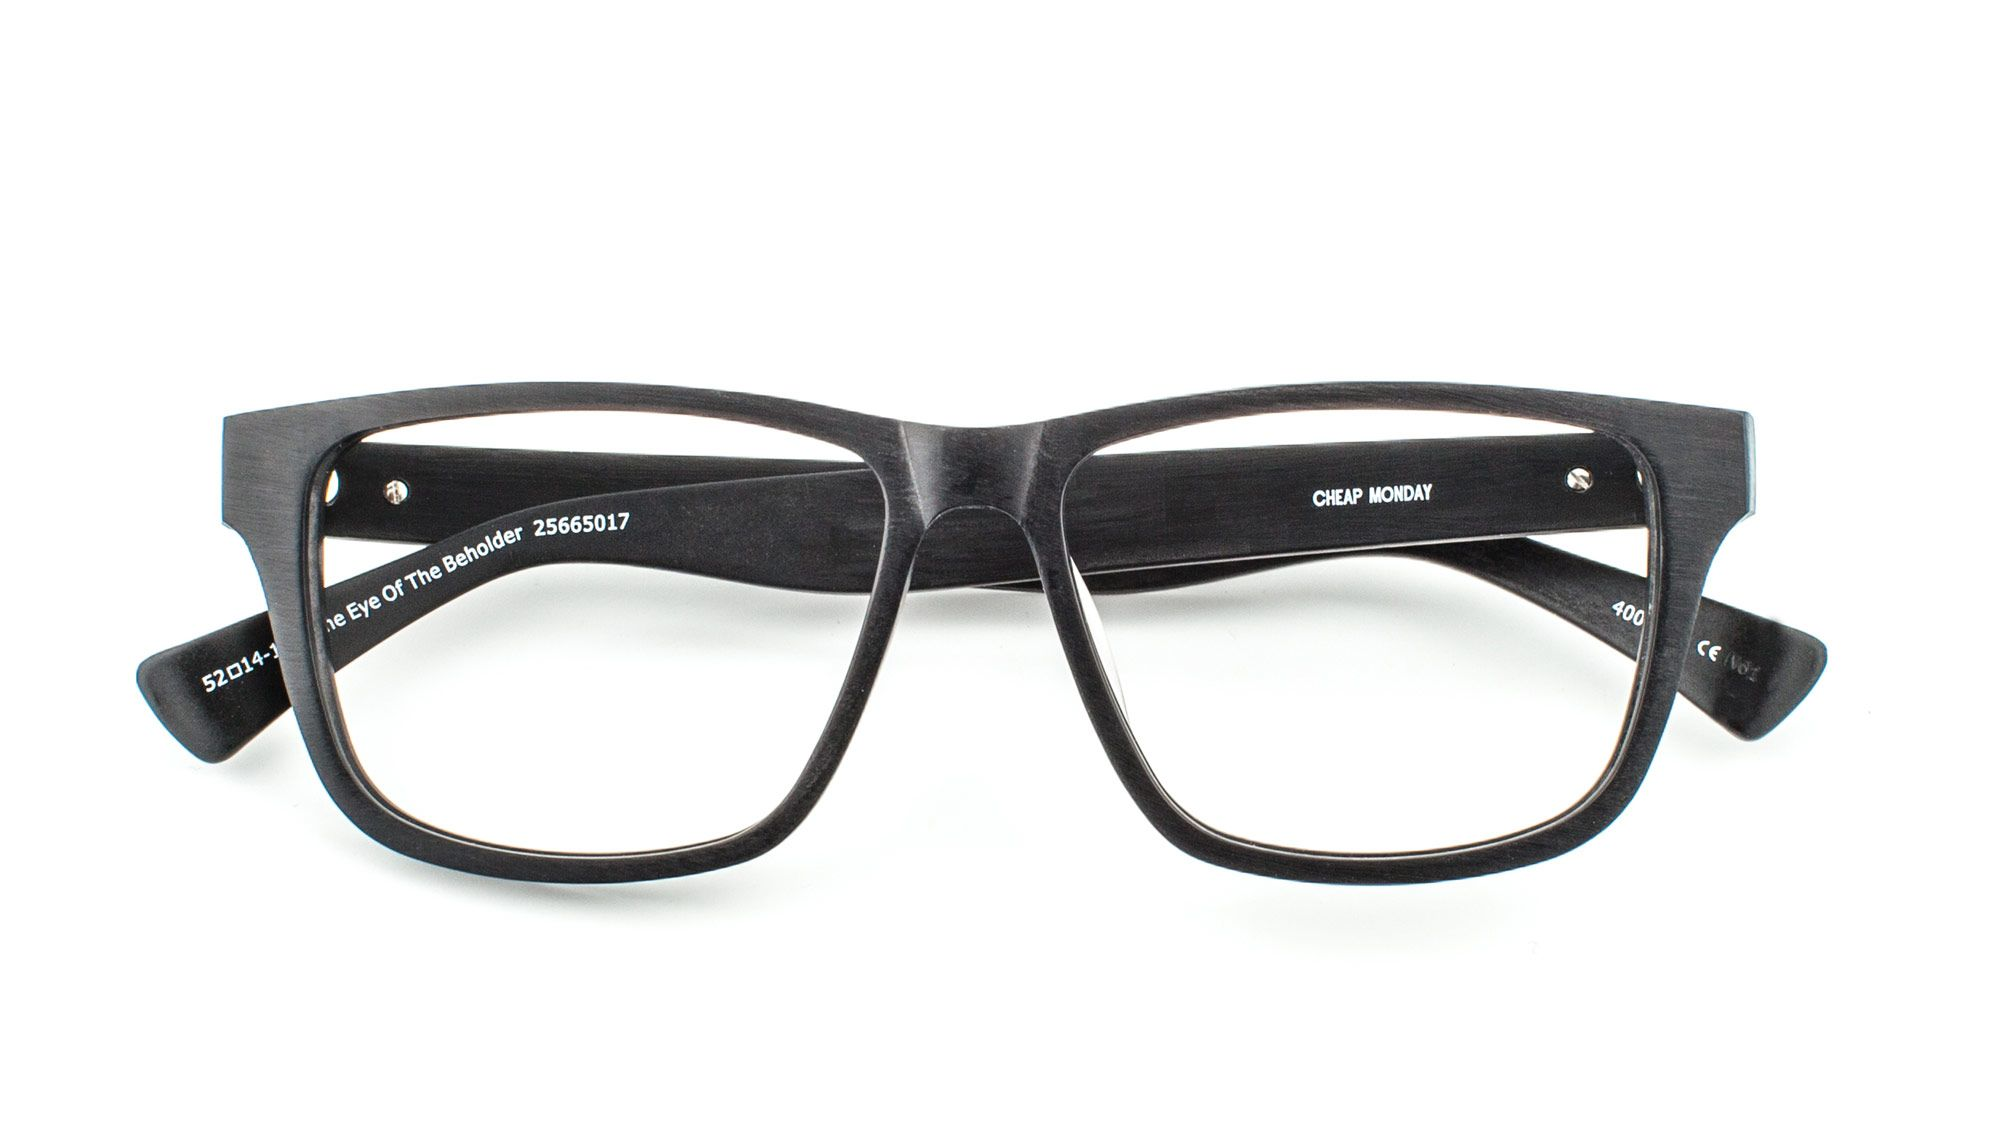 cheap designer eyeglasses  EOT BEHOLDER Glasses by Cheap Monday